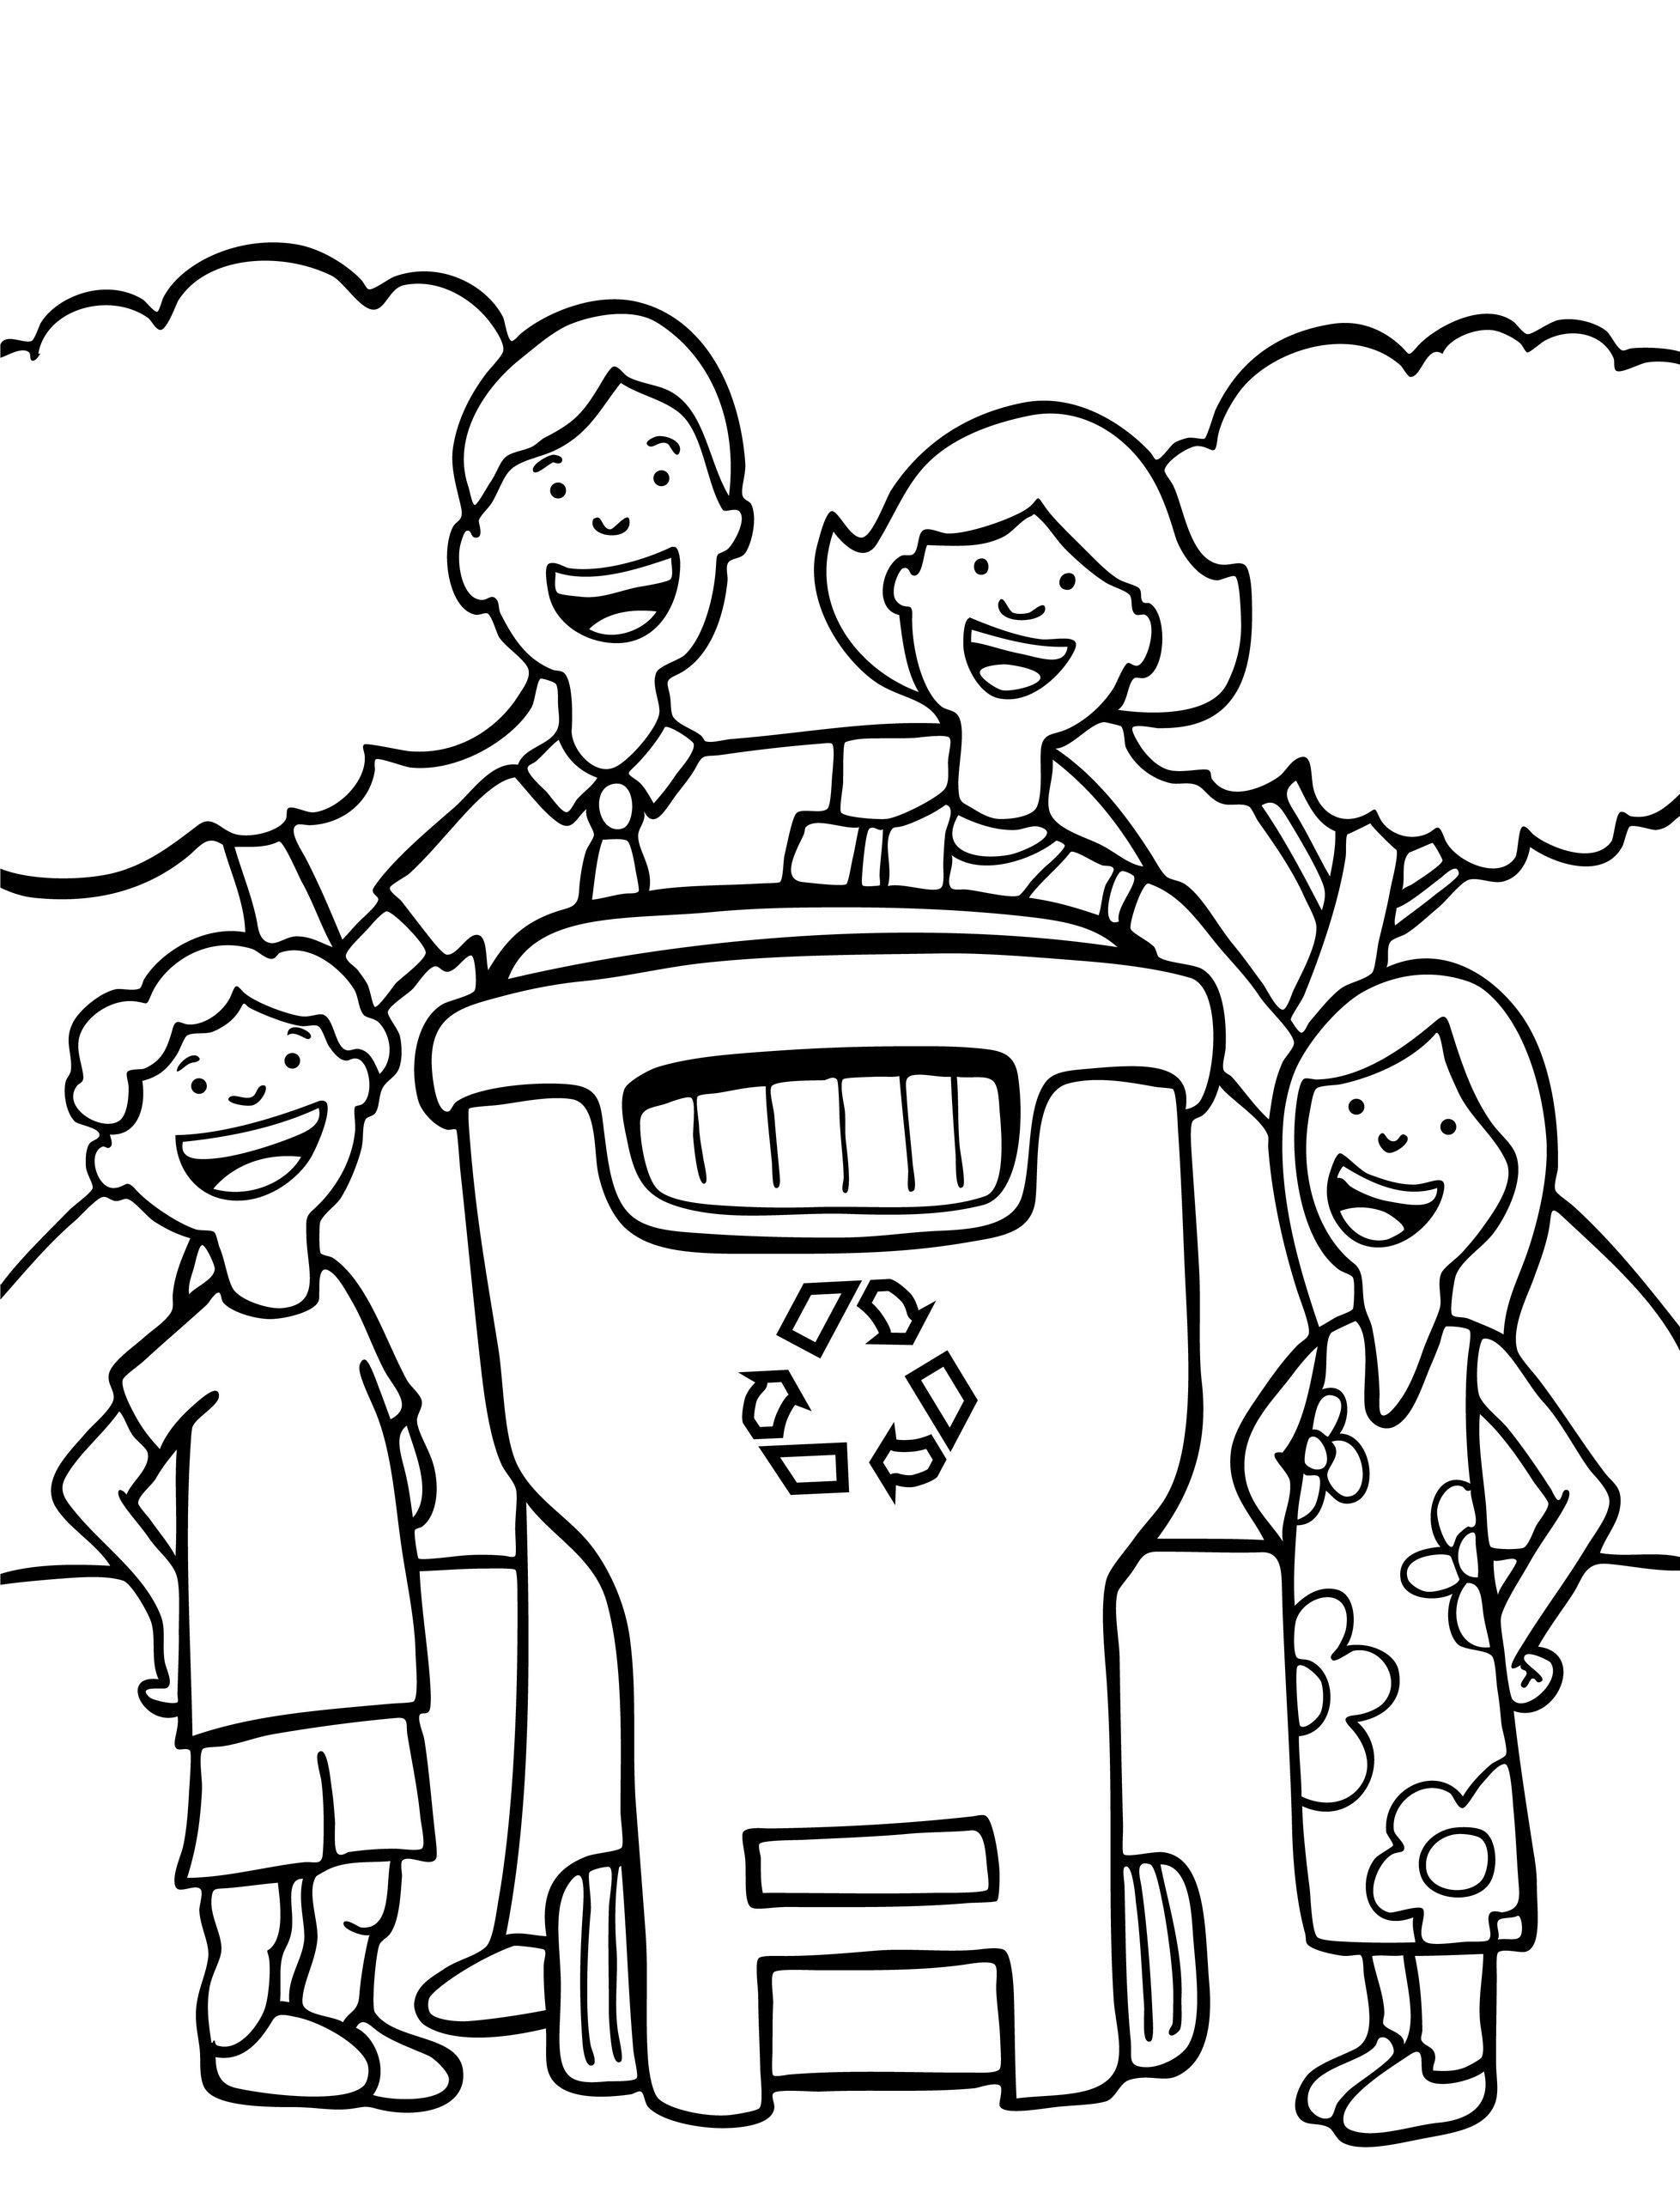 free earth day coloring page for children let u0027s recycle